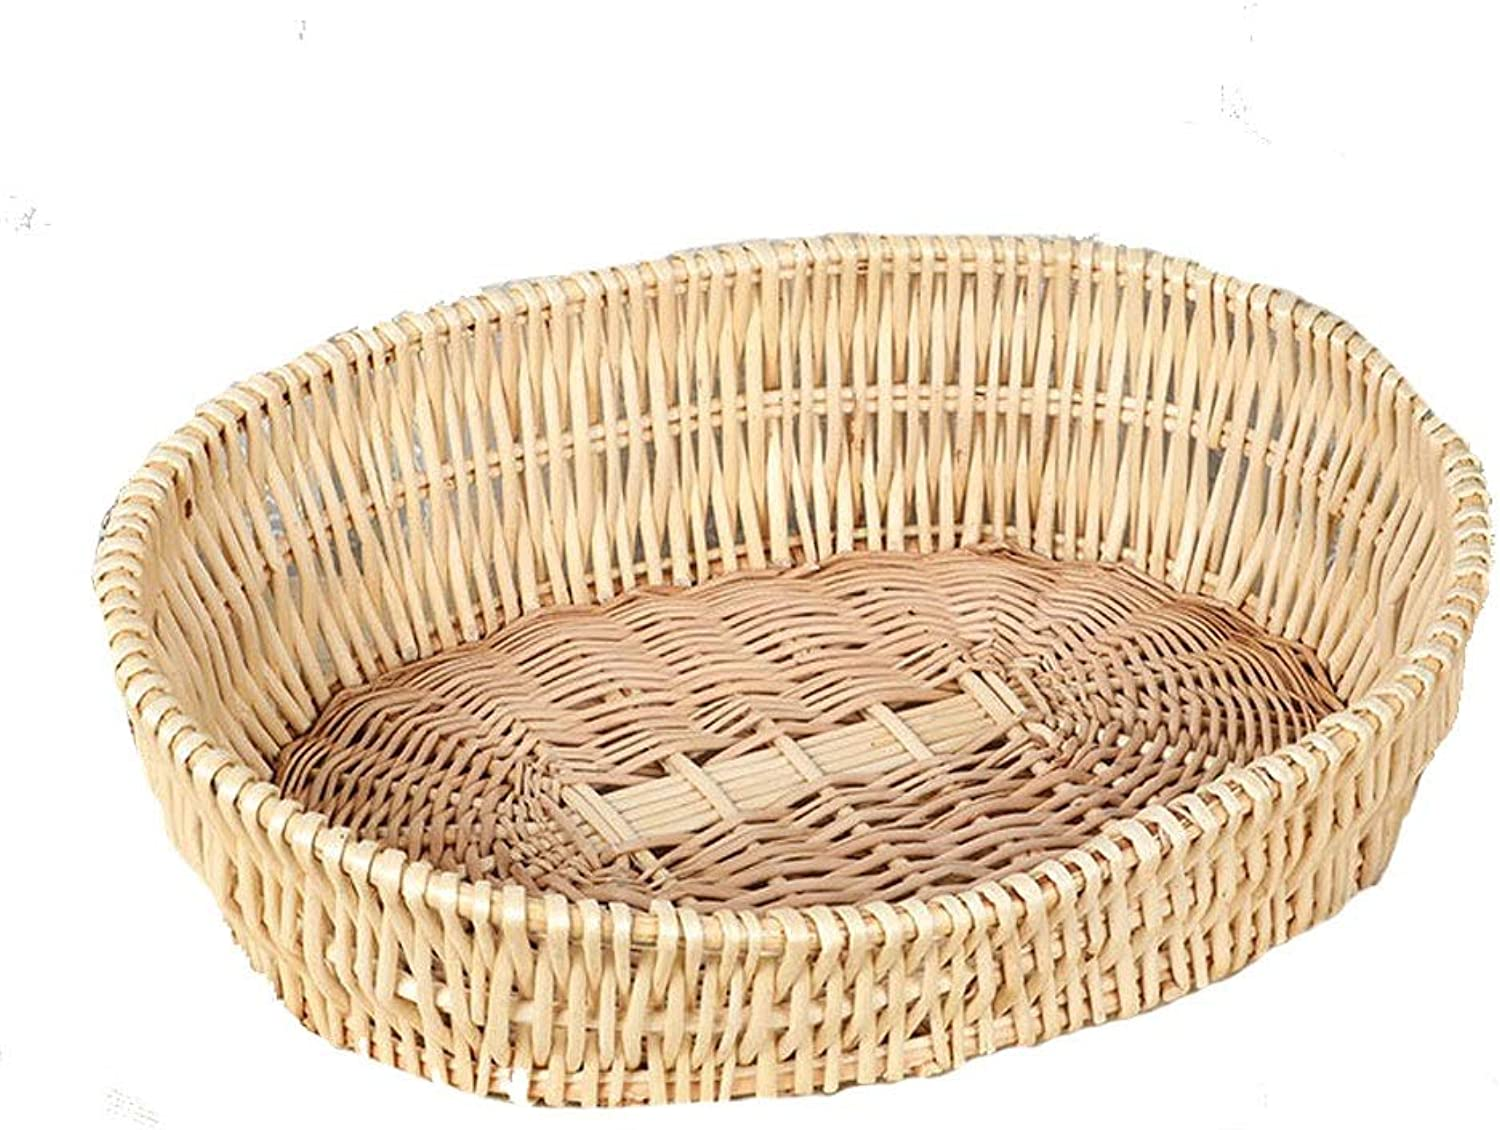 B&F Rattan Cat Litter, Cat House Cat Cage Rattan Wicker Kennel Pet Nest Summer Season Universal Removable And Washable (color   D, Size   L)